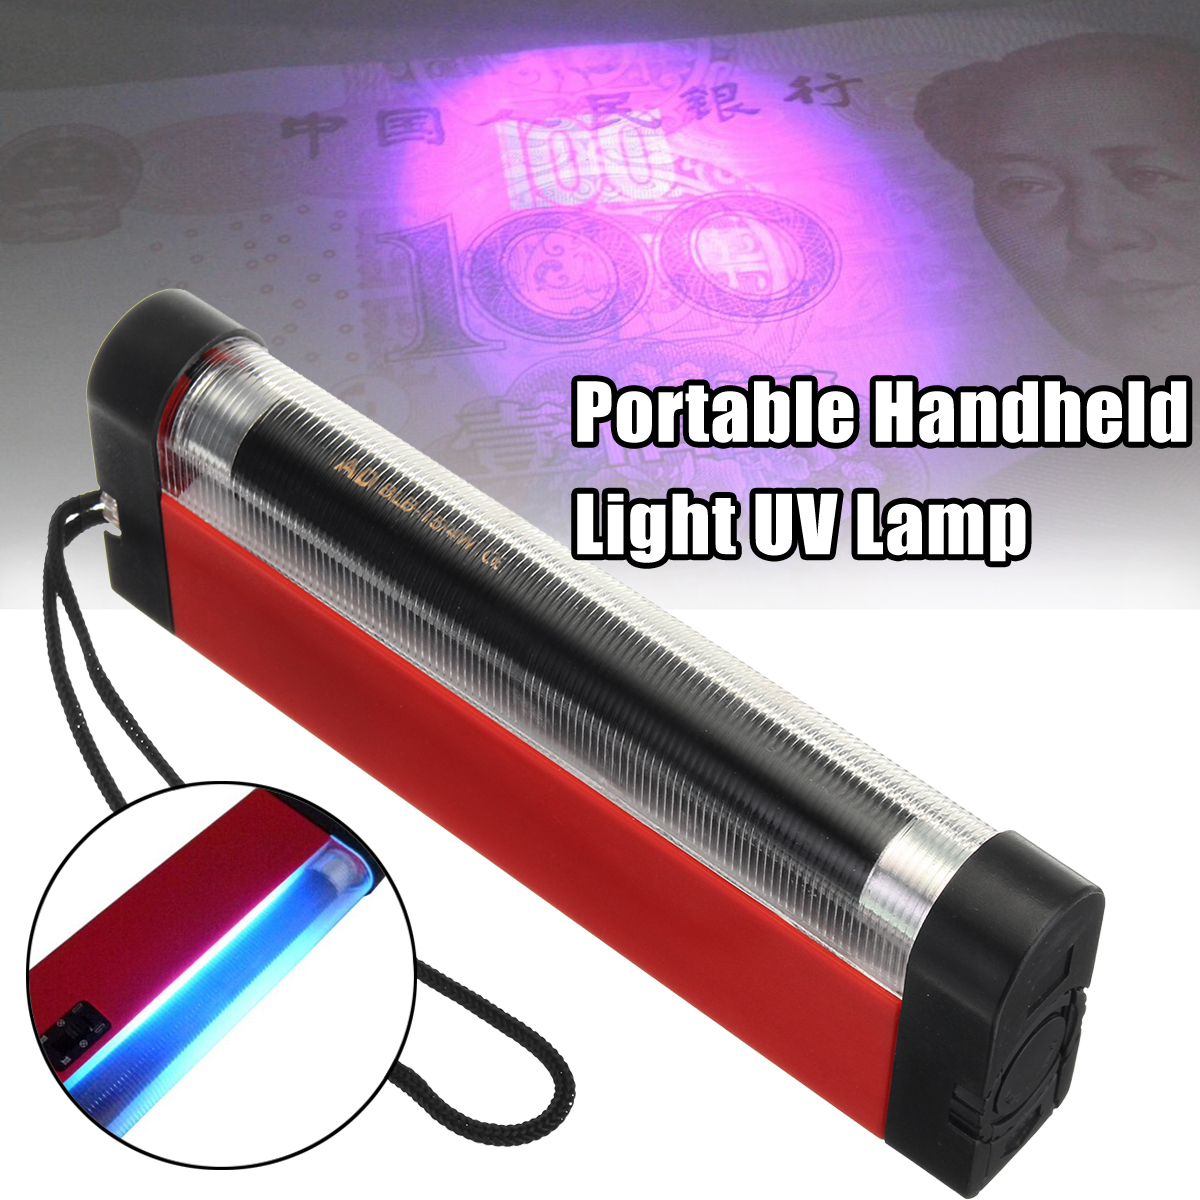 New Portable Handheld Wood's Light UV Lamp 4W for Skin Care Diagnosis Torch Light Flashlight